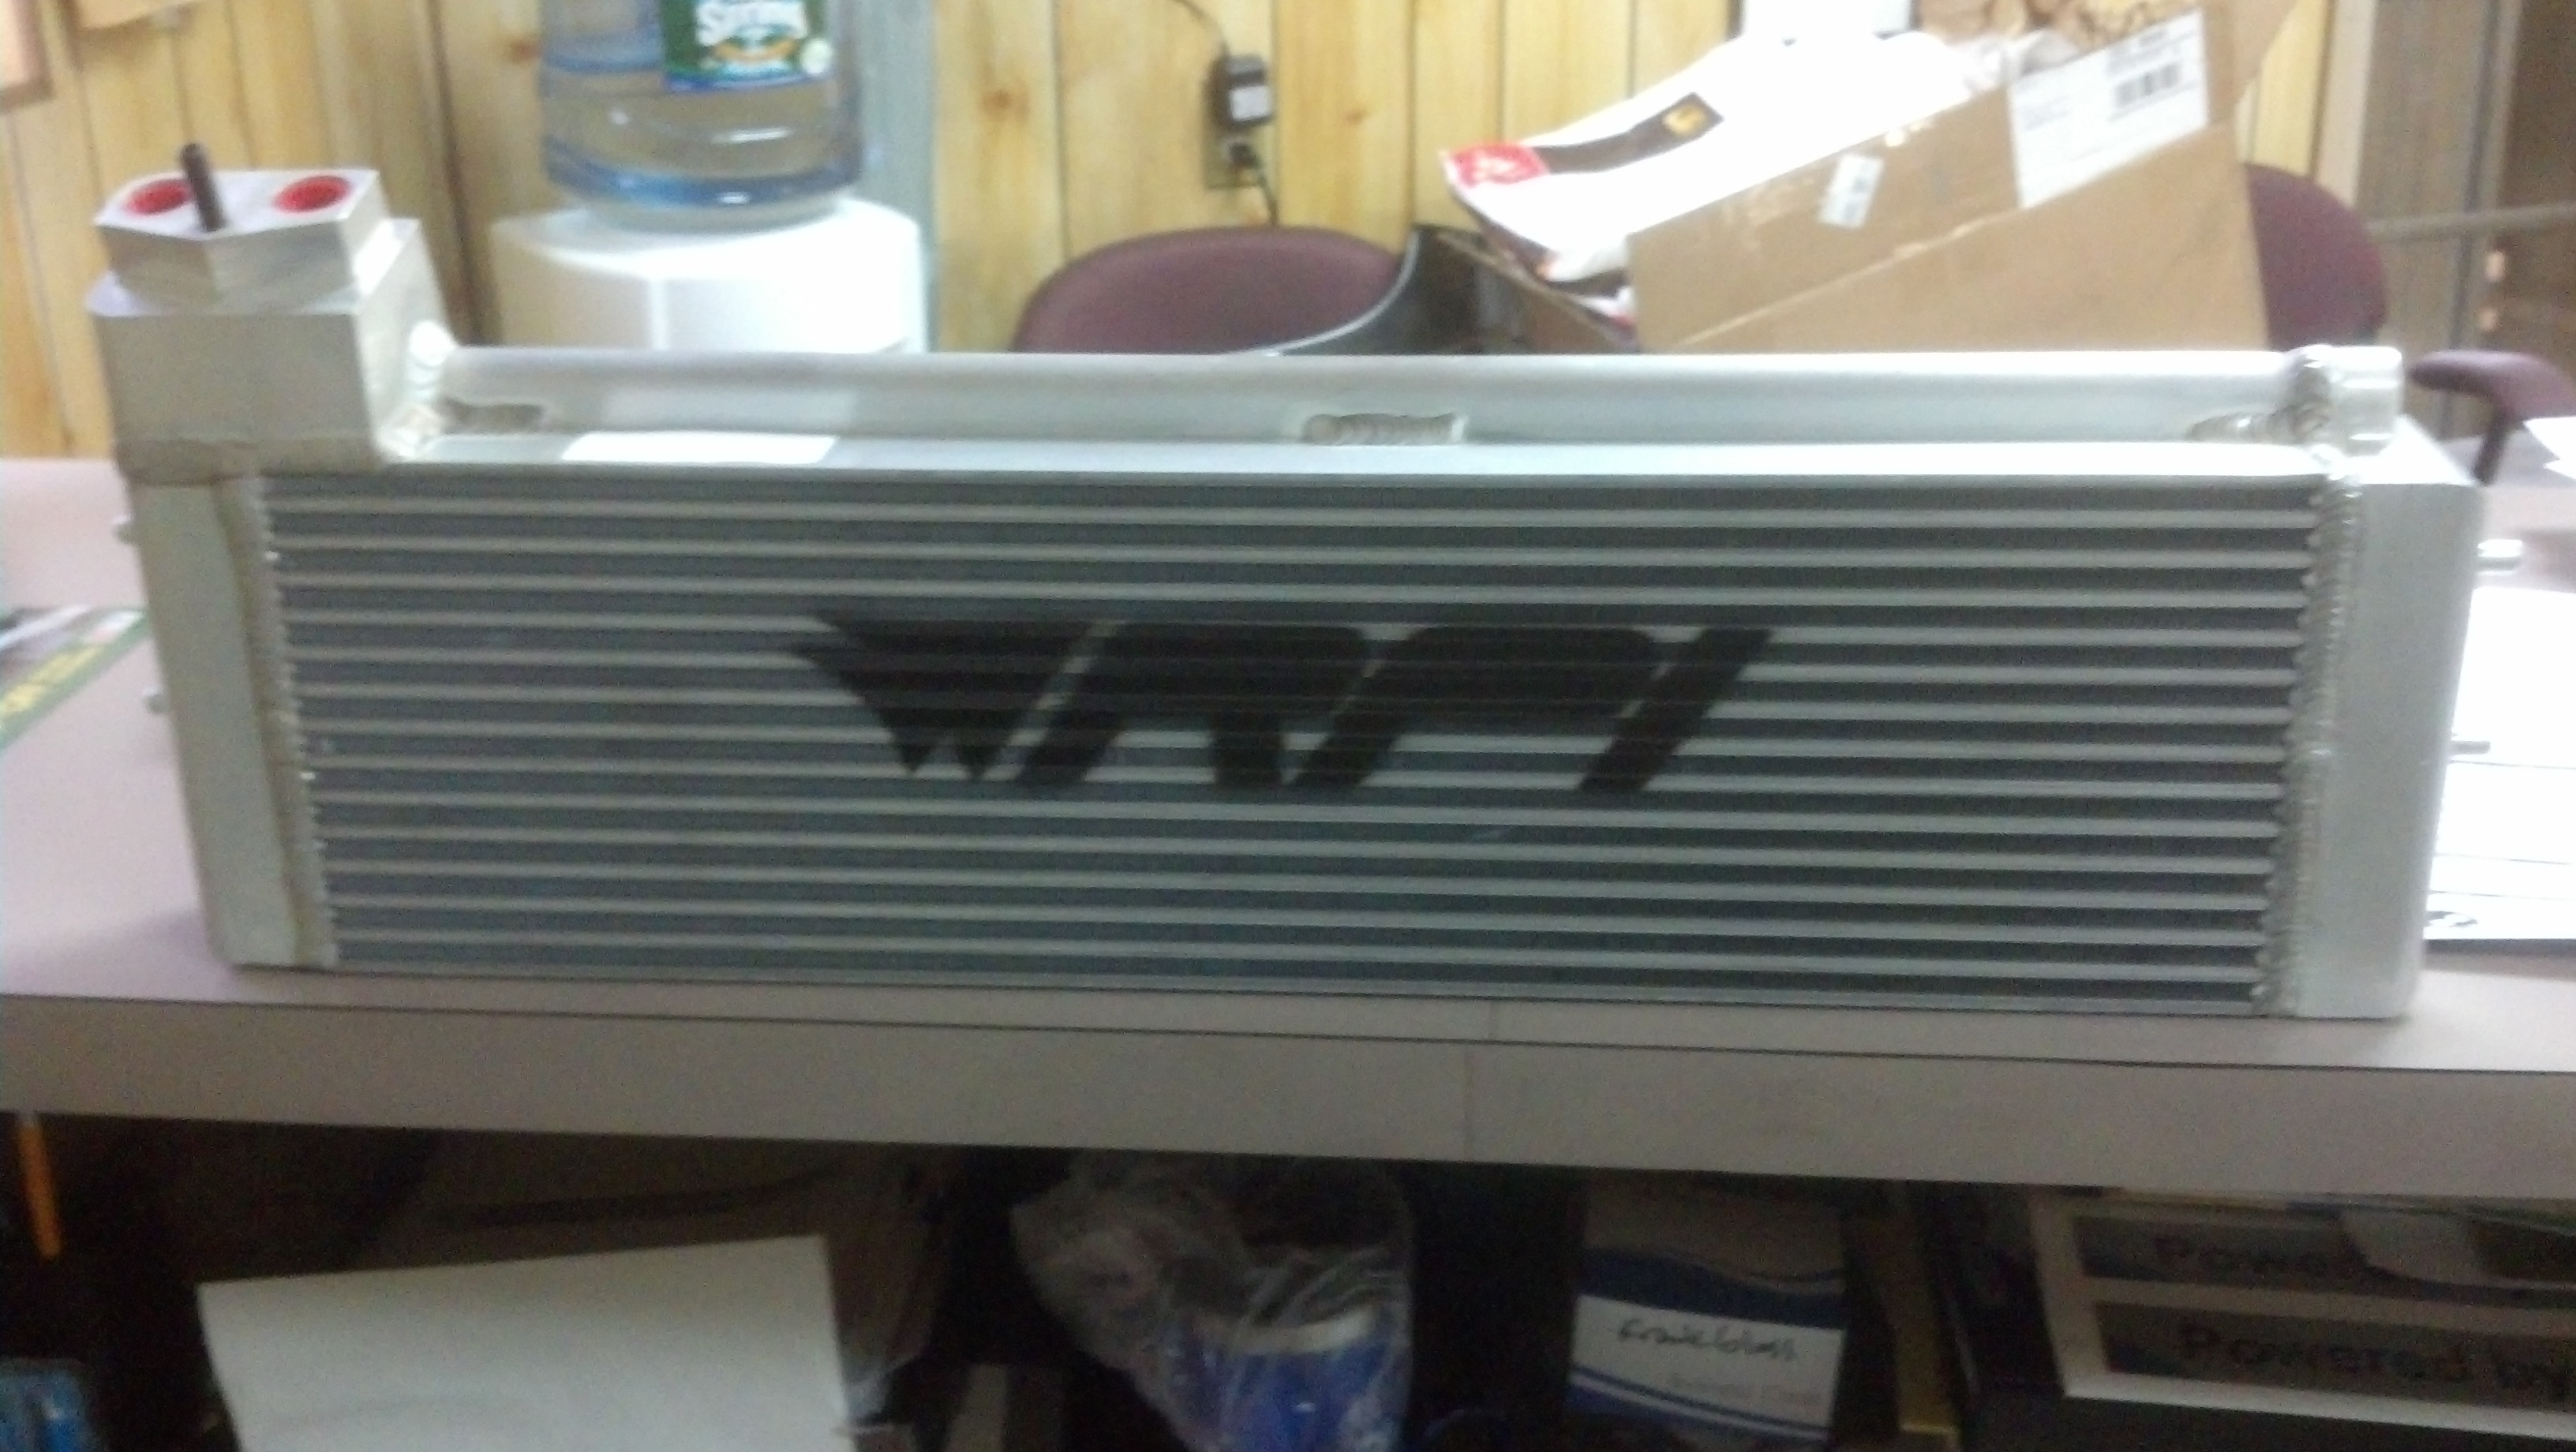 New rpi oil cooler just arrived  BMW M5 Forum and M6 Forums